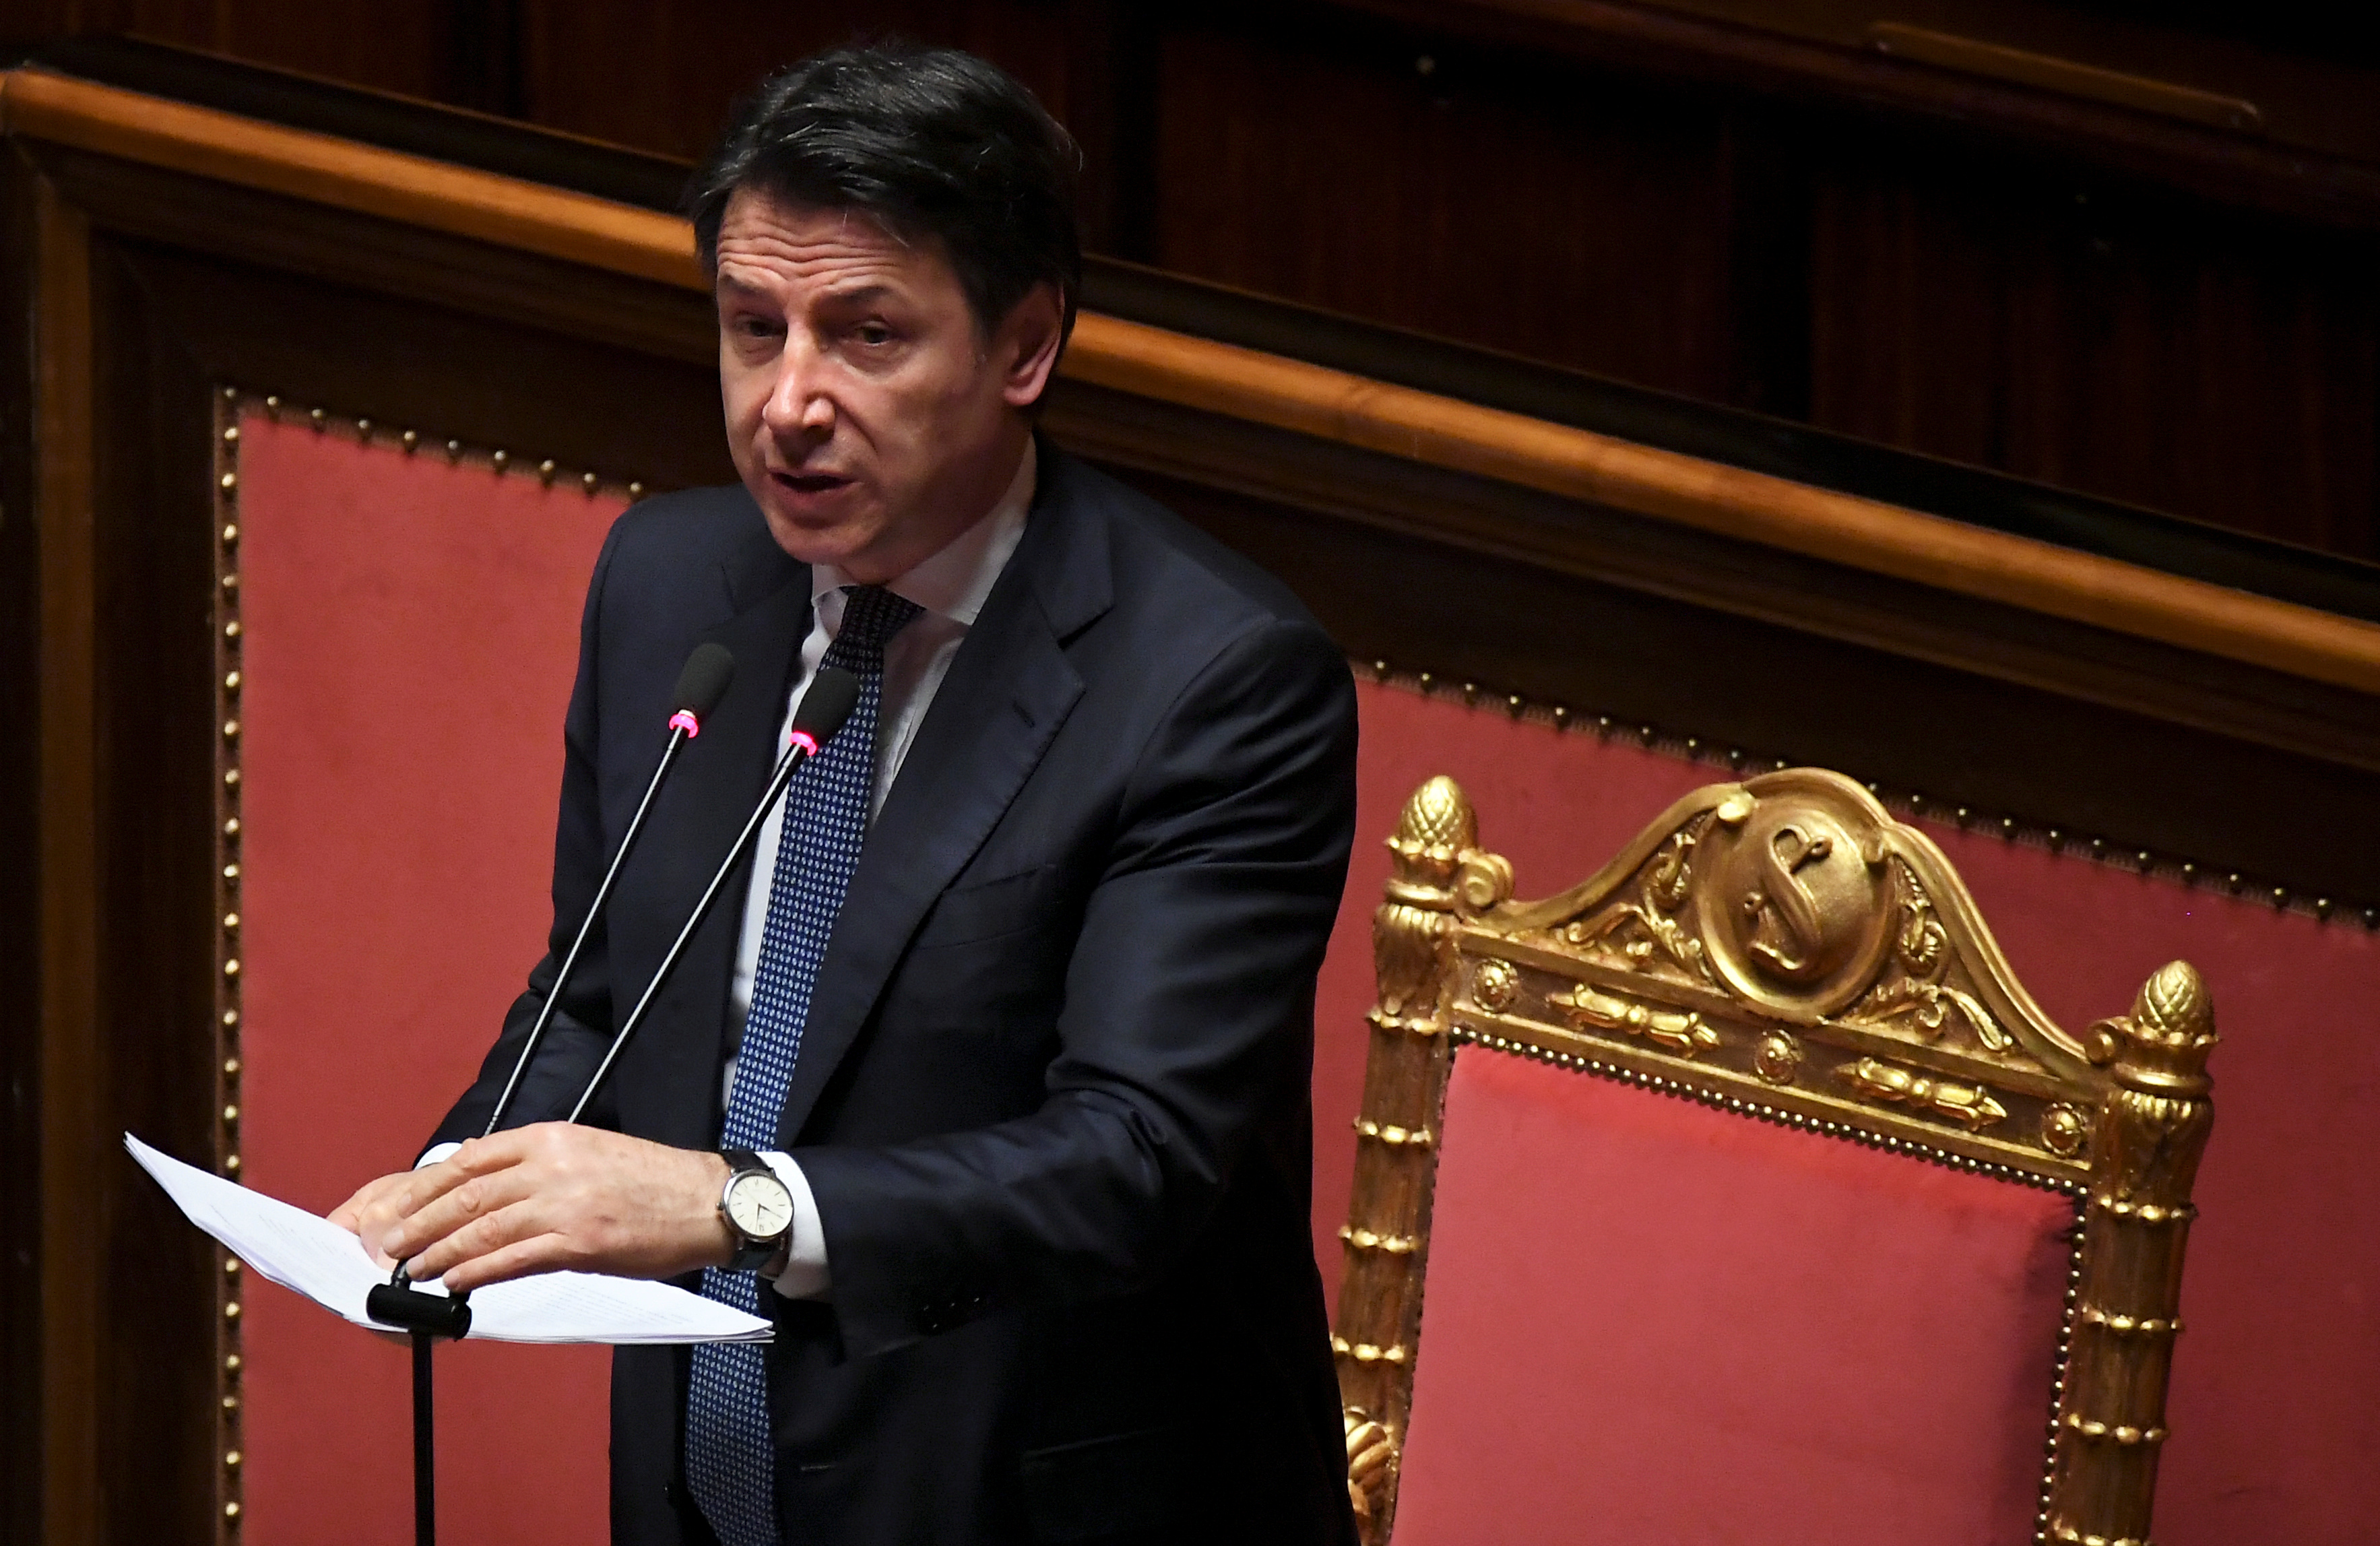 FILE PHOTO: Italian Prime Minister Giuseppe Conte addresses the Senate, the upper house of parliament, on the spread of coronavirus disease (COVID-19), in Rome, Italy, March 26, 2020 REUTERS/Alberto Lingria/File Photo